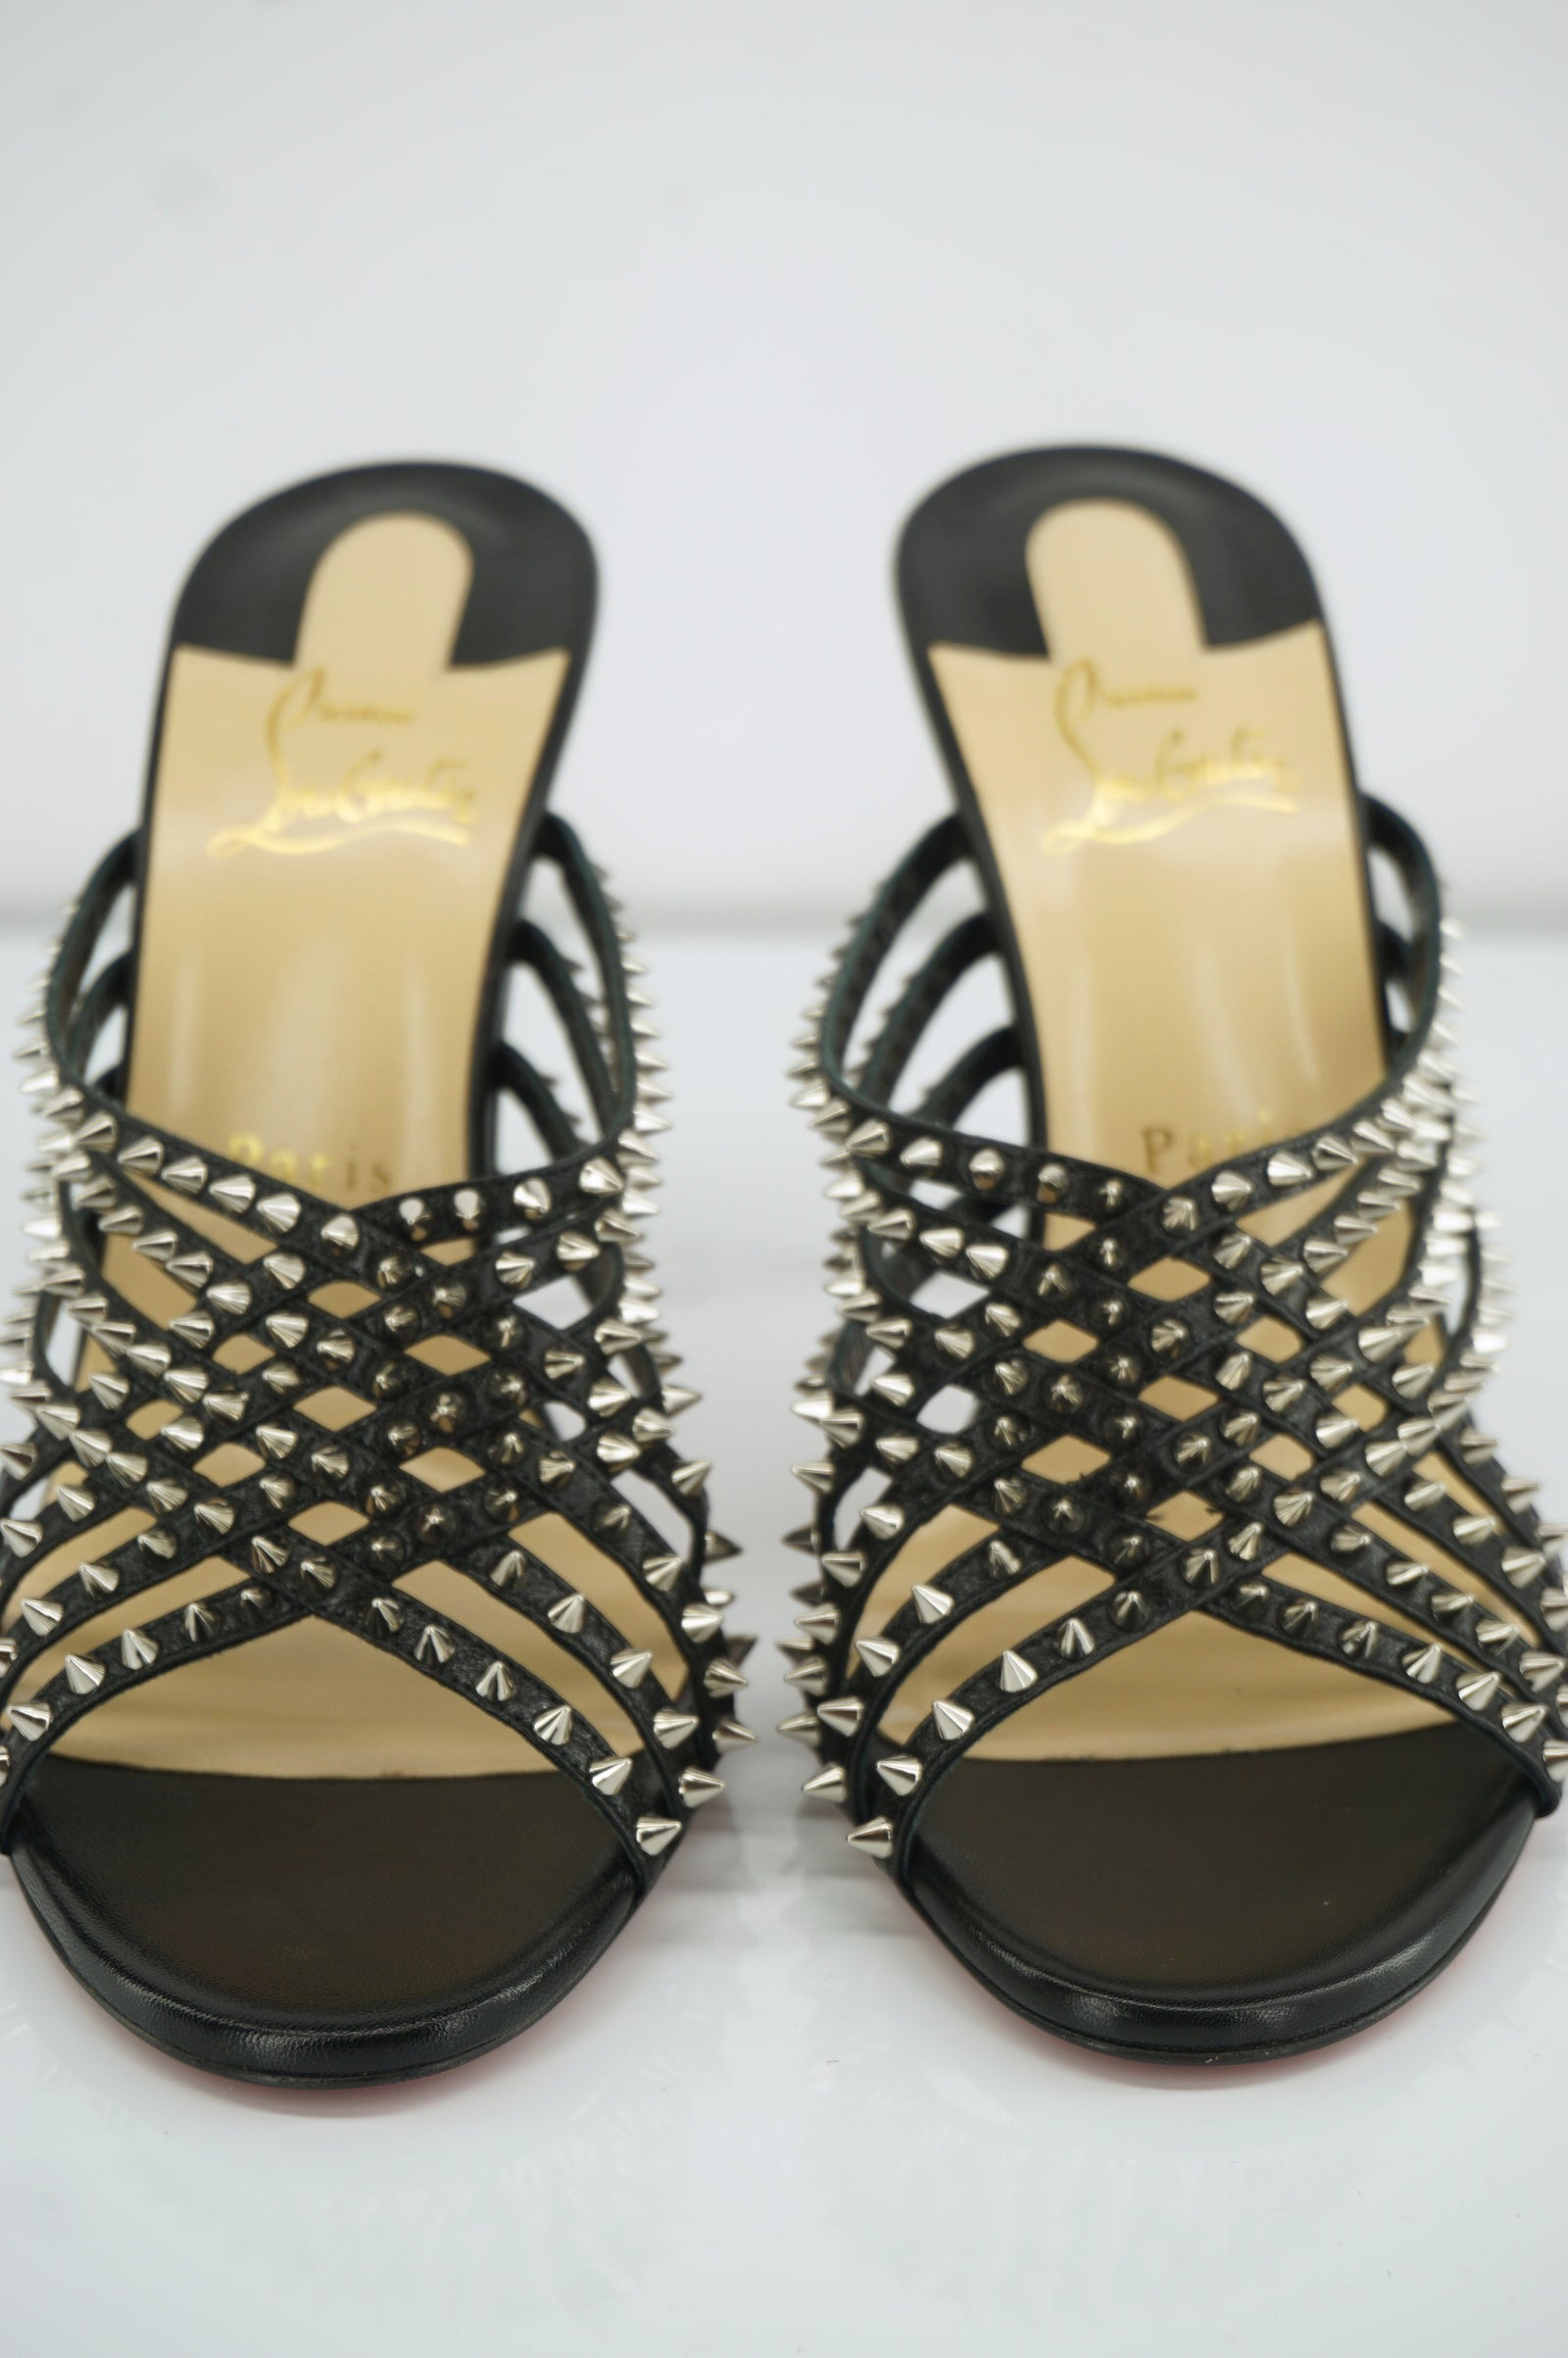 Christian Louboutin Marthaspike Leather Sandals Size 38.5 Black $995 Strappy NIB